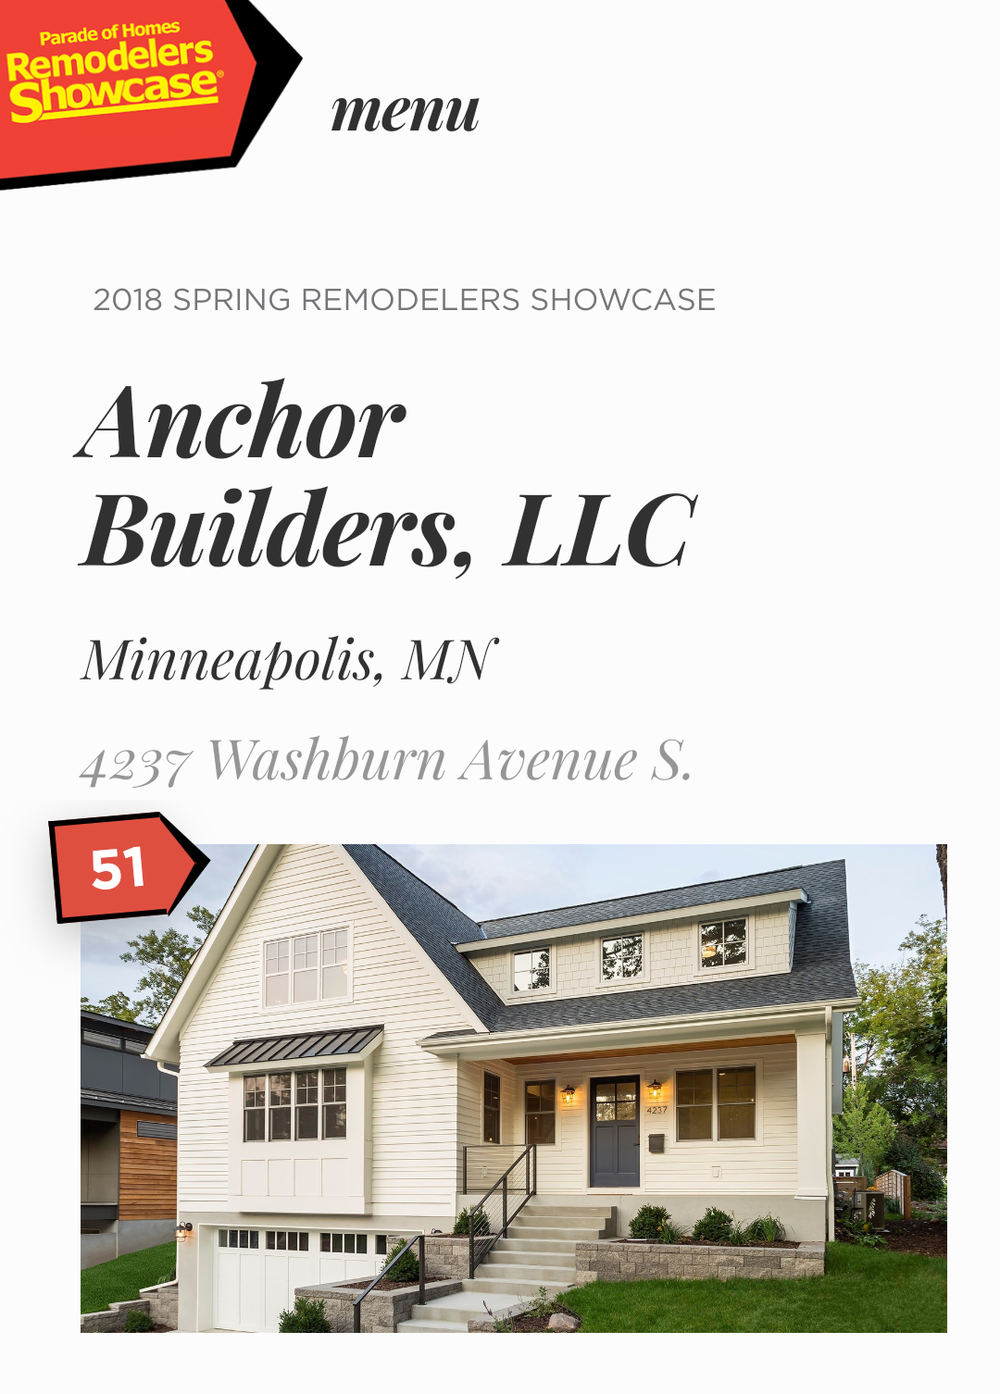 Join us for the 2018 Spring Remodeler's Showcase!